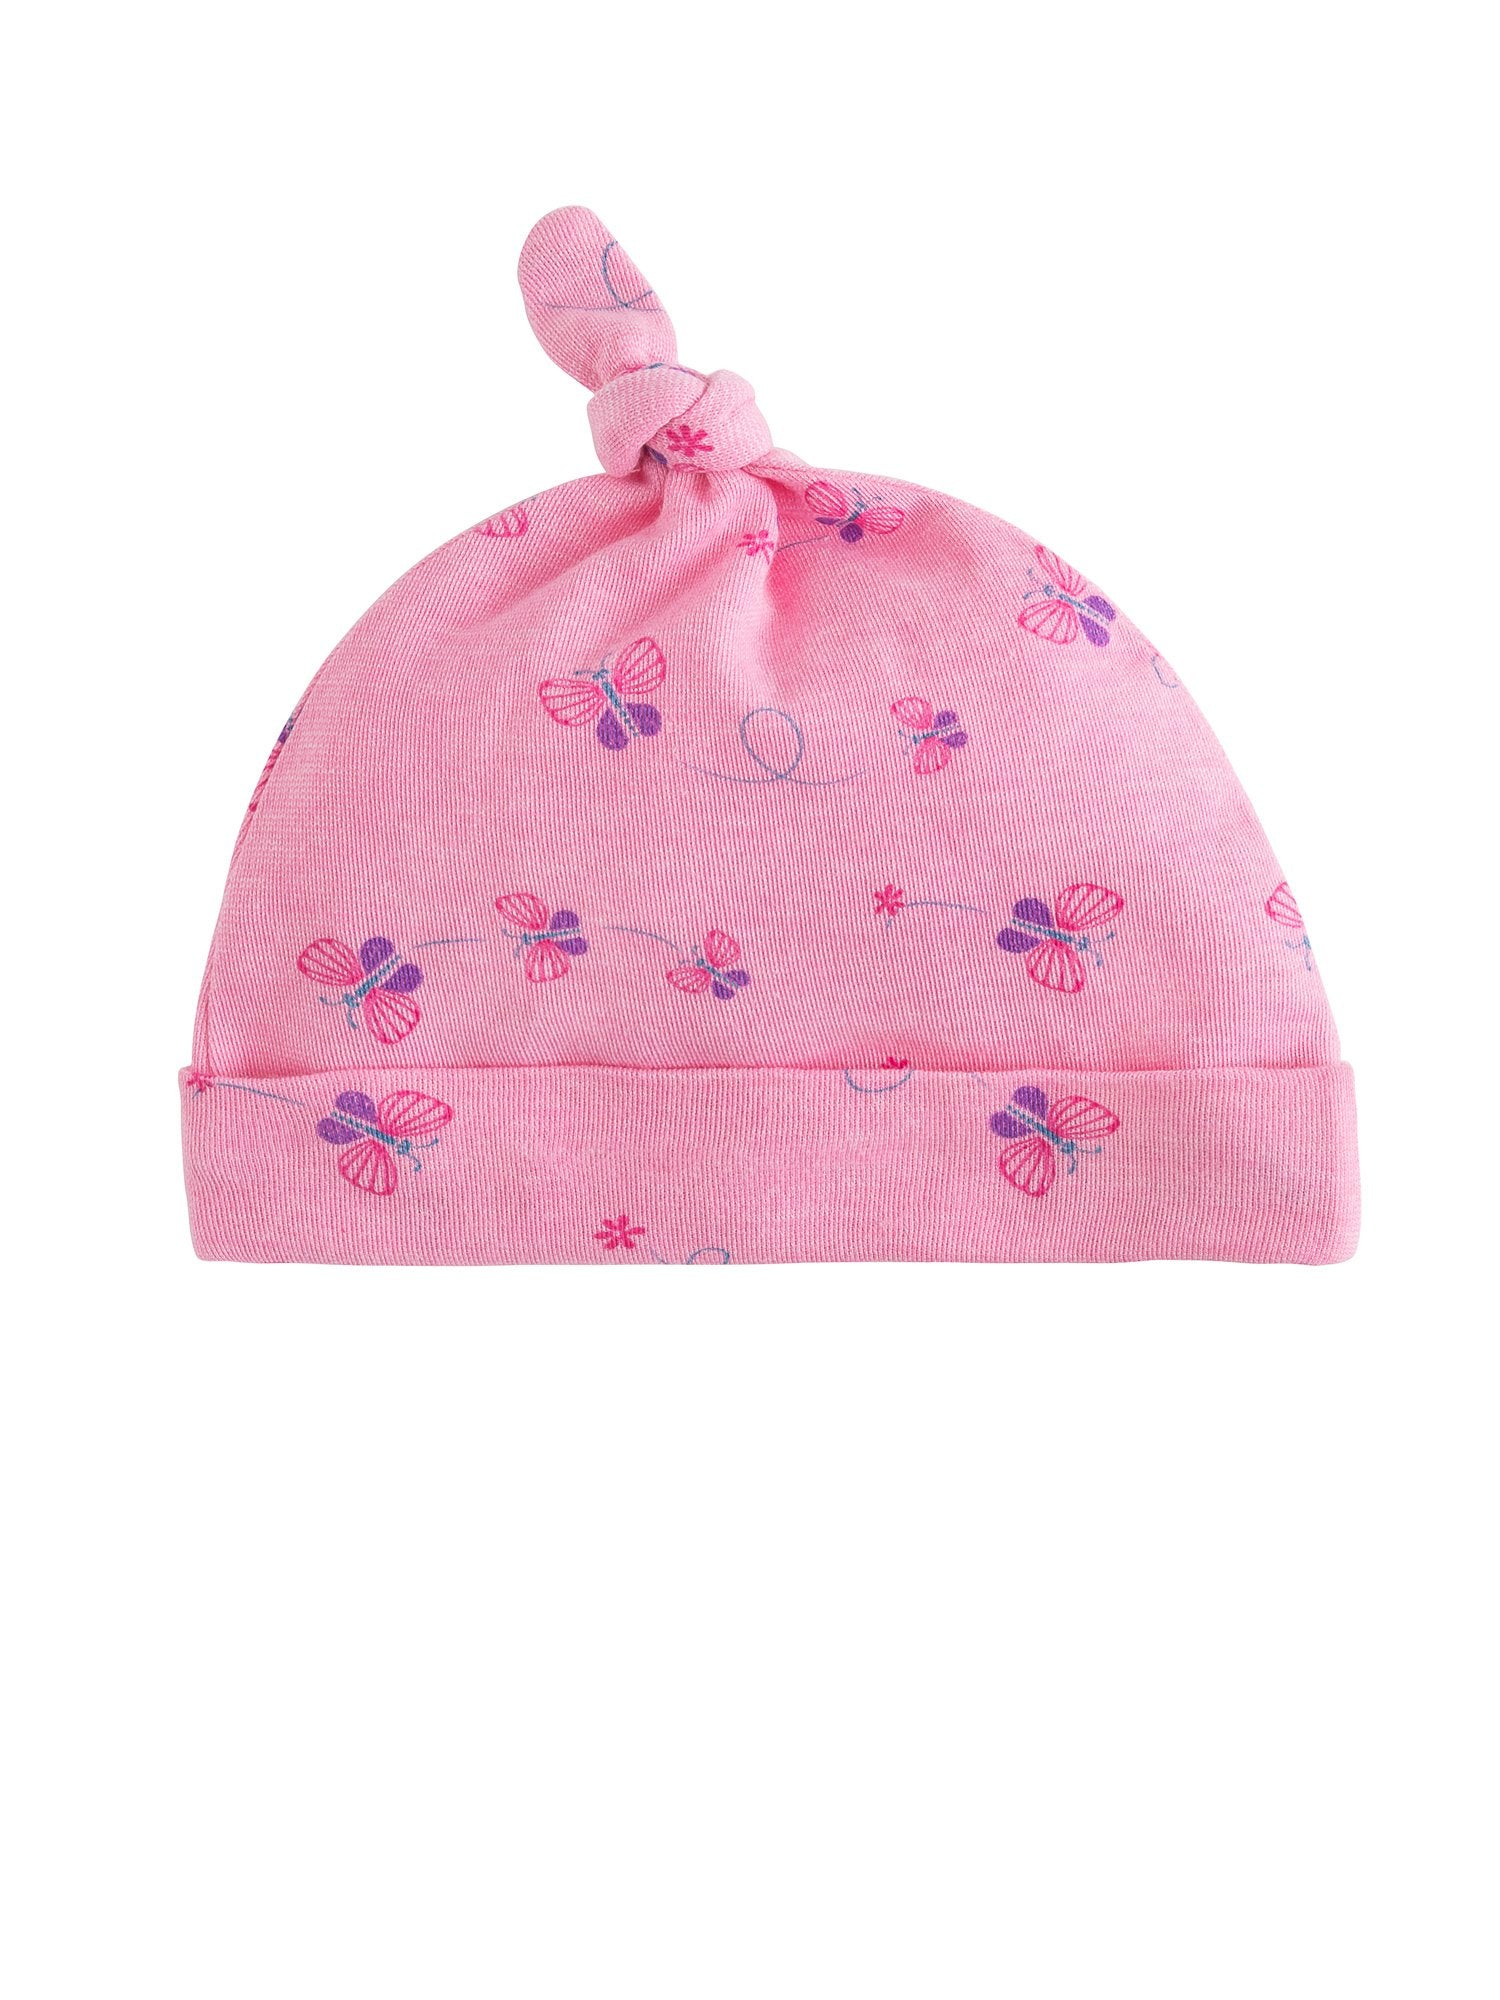 Organic Cotton Baby Knot Top Beanie Hat - Butterfly Print – Under the Nile 725bc6da708